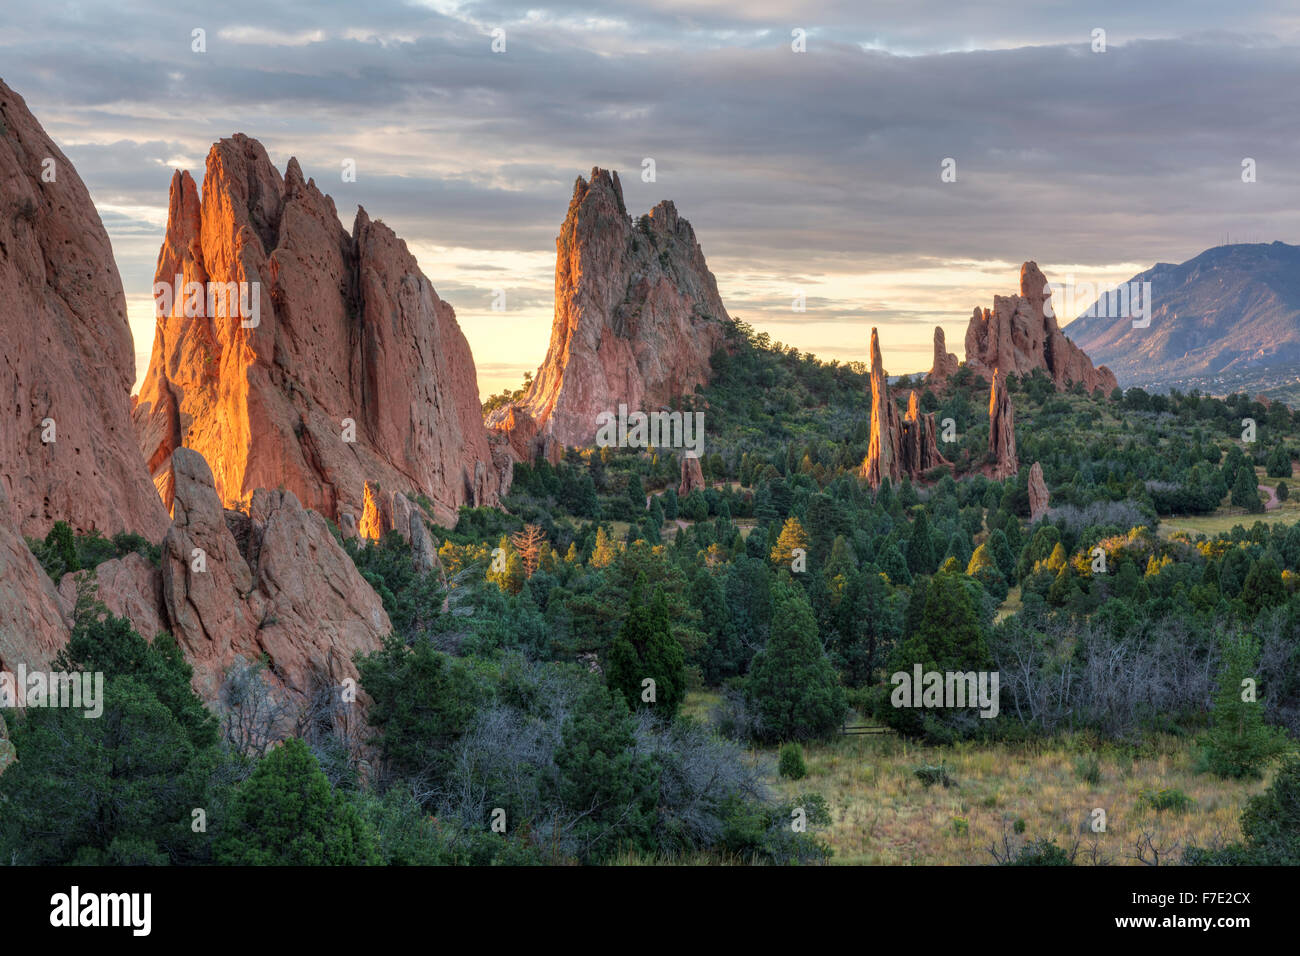 Sunrise on the red rocks formations of the Garden of the Gods in Colorado Springs, Colorado - Stock Image